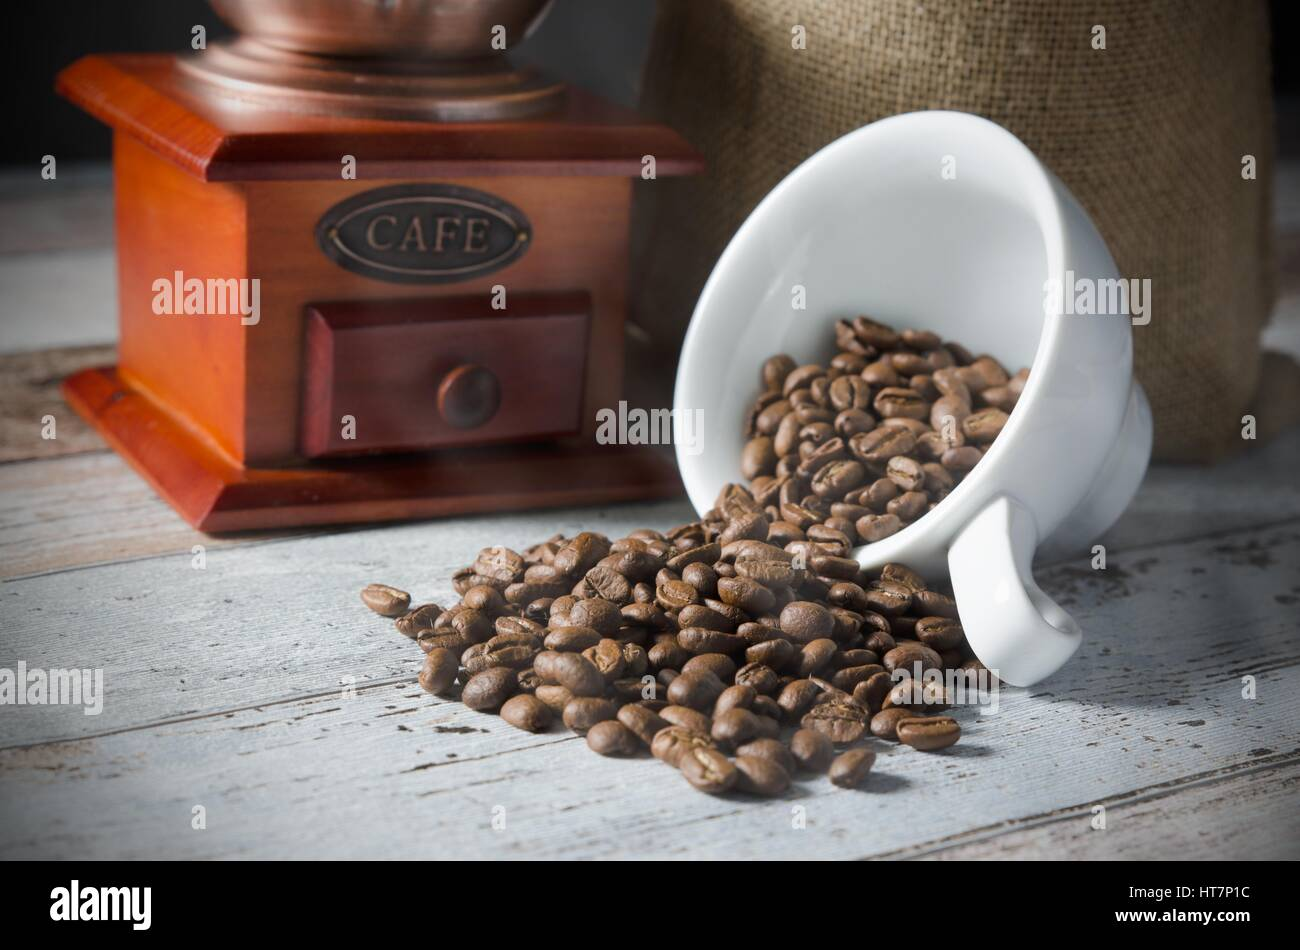 Coffee grain spill from a cup. Jute bag of roasted beans and mill in background - Stock Image